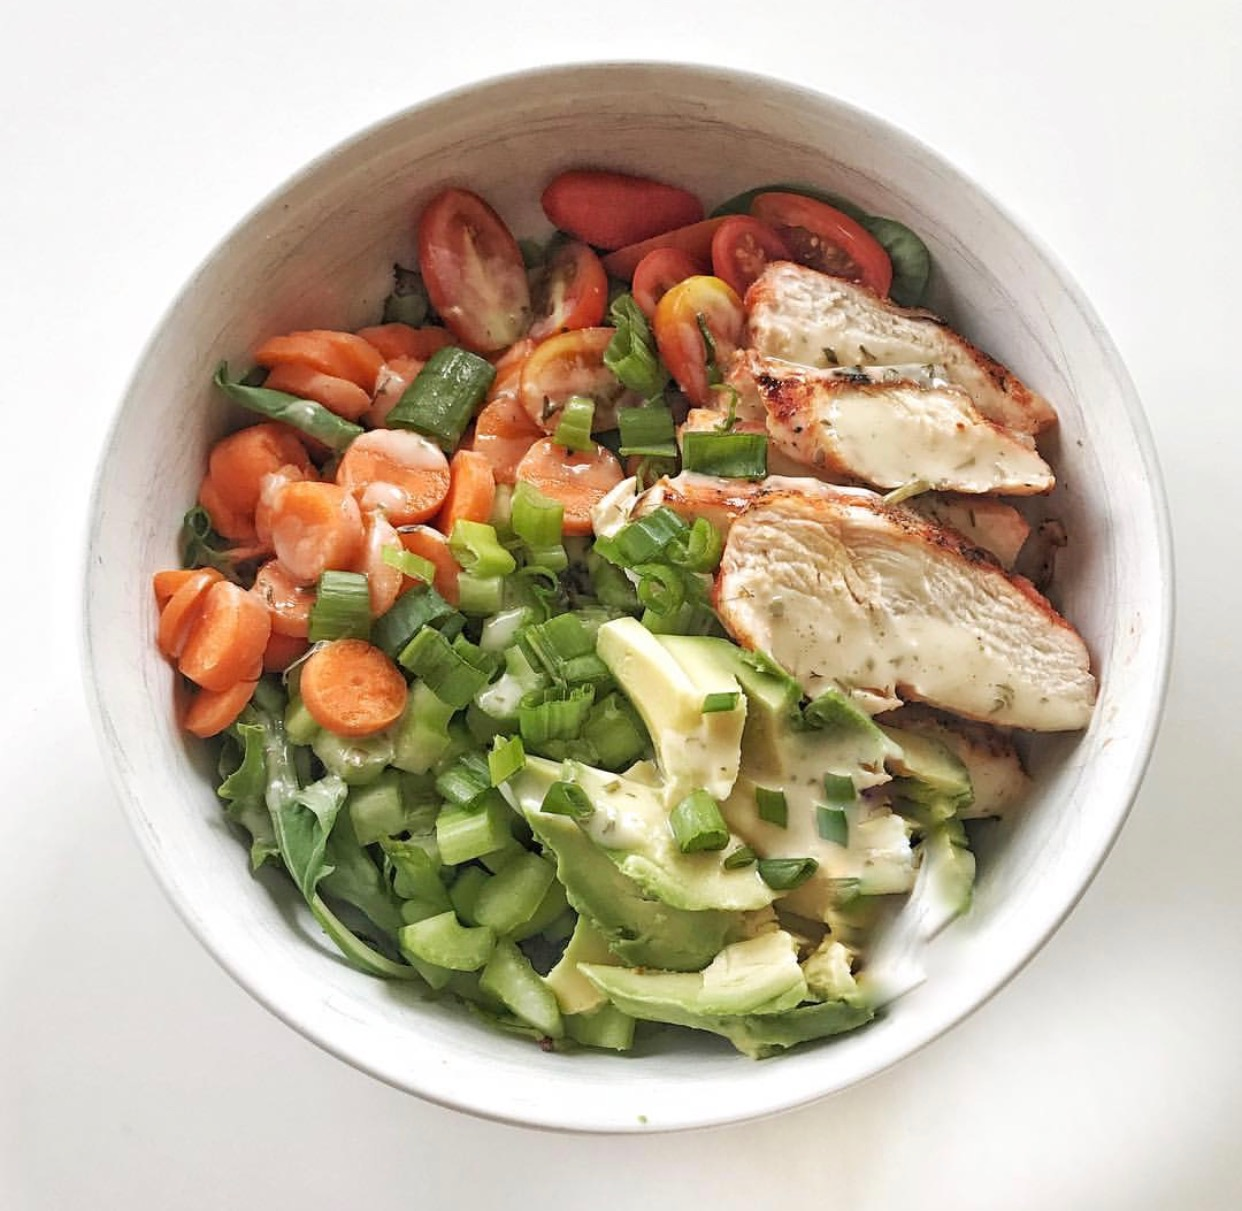 Buffalo Chicken Salad  Protein: Grilled chicken brushed with Frank's Red Hot Sauce Vegetables: Spinach, spring mix, celery, carrots, tomatoes, avocado Toppings: Green onions, Primal Kitchen ranch dressing